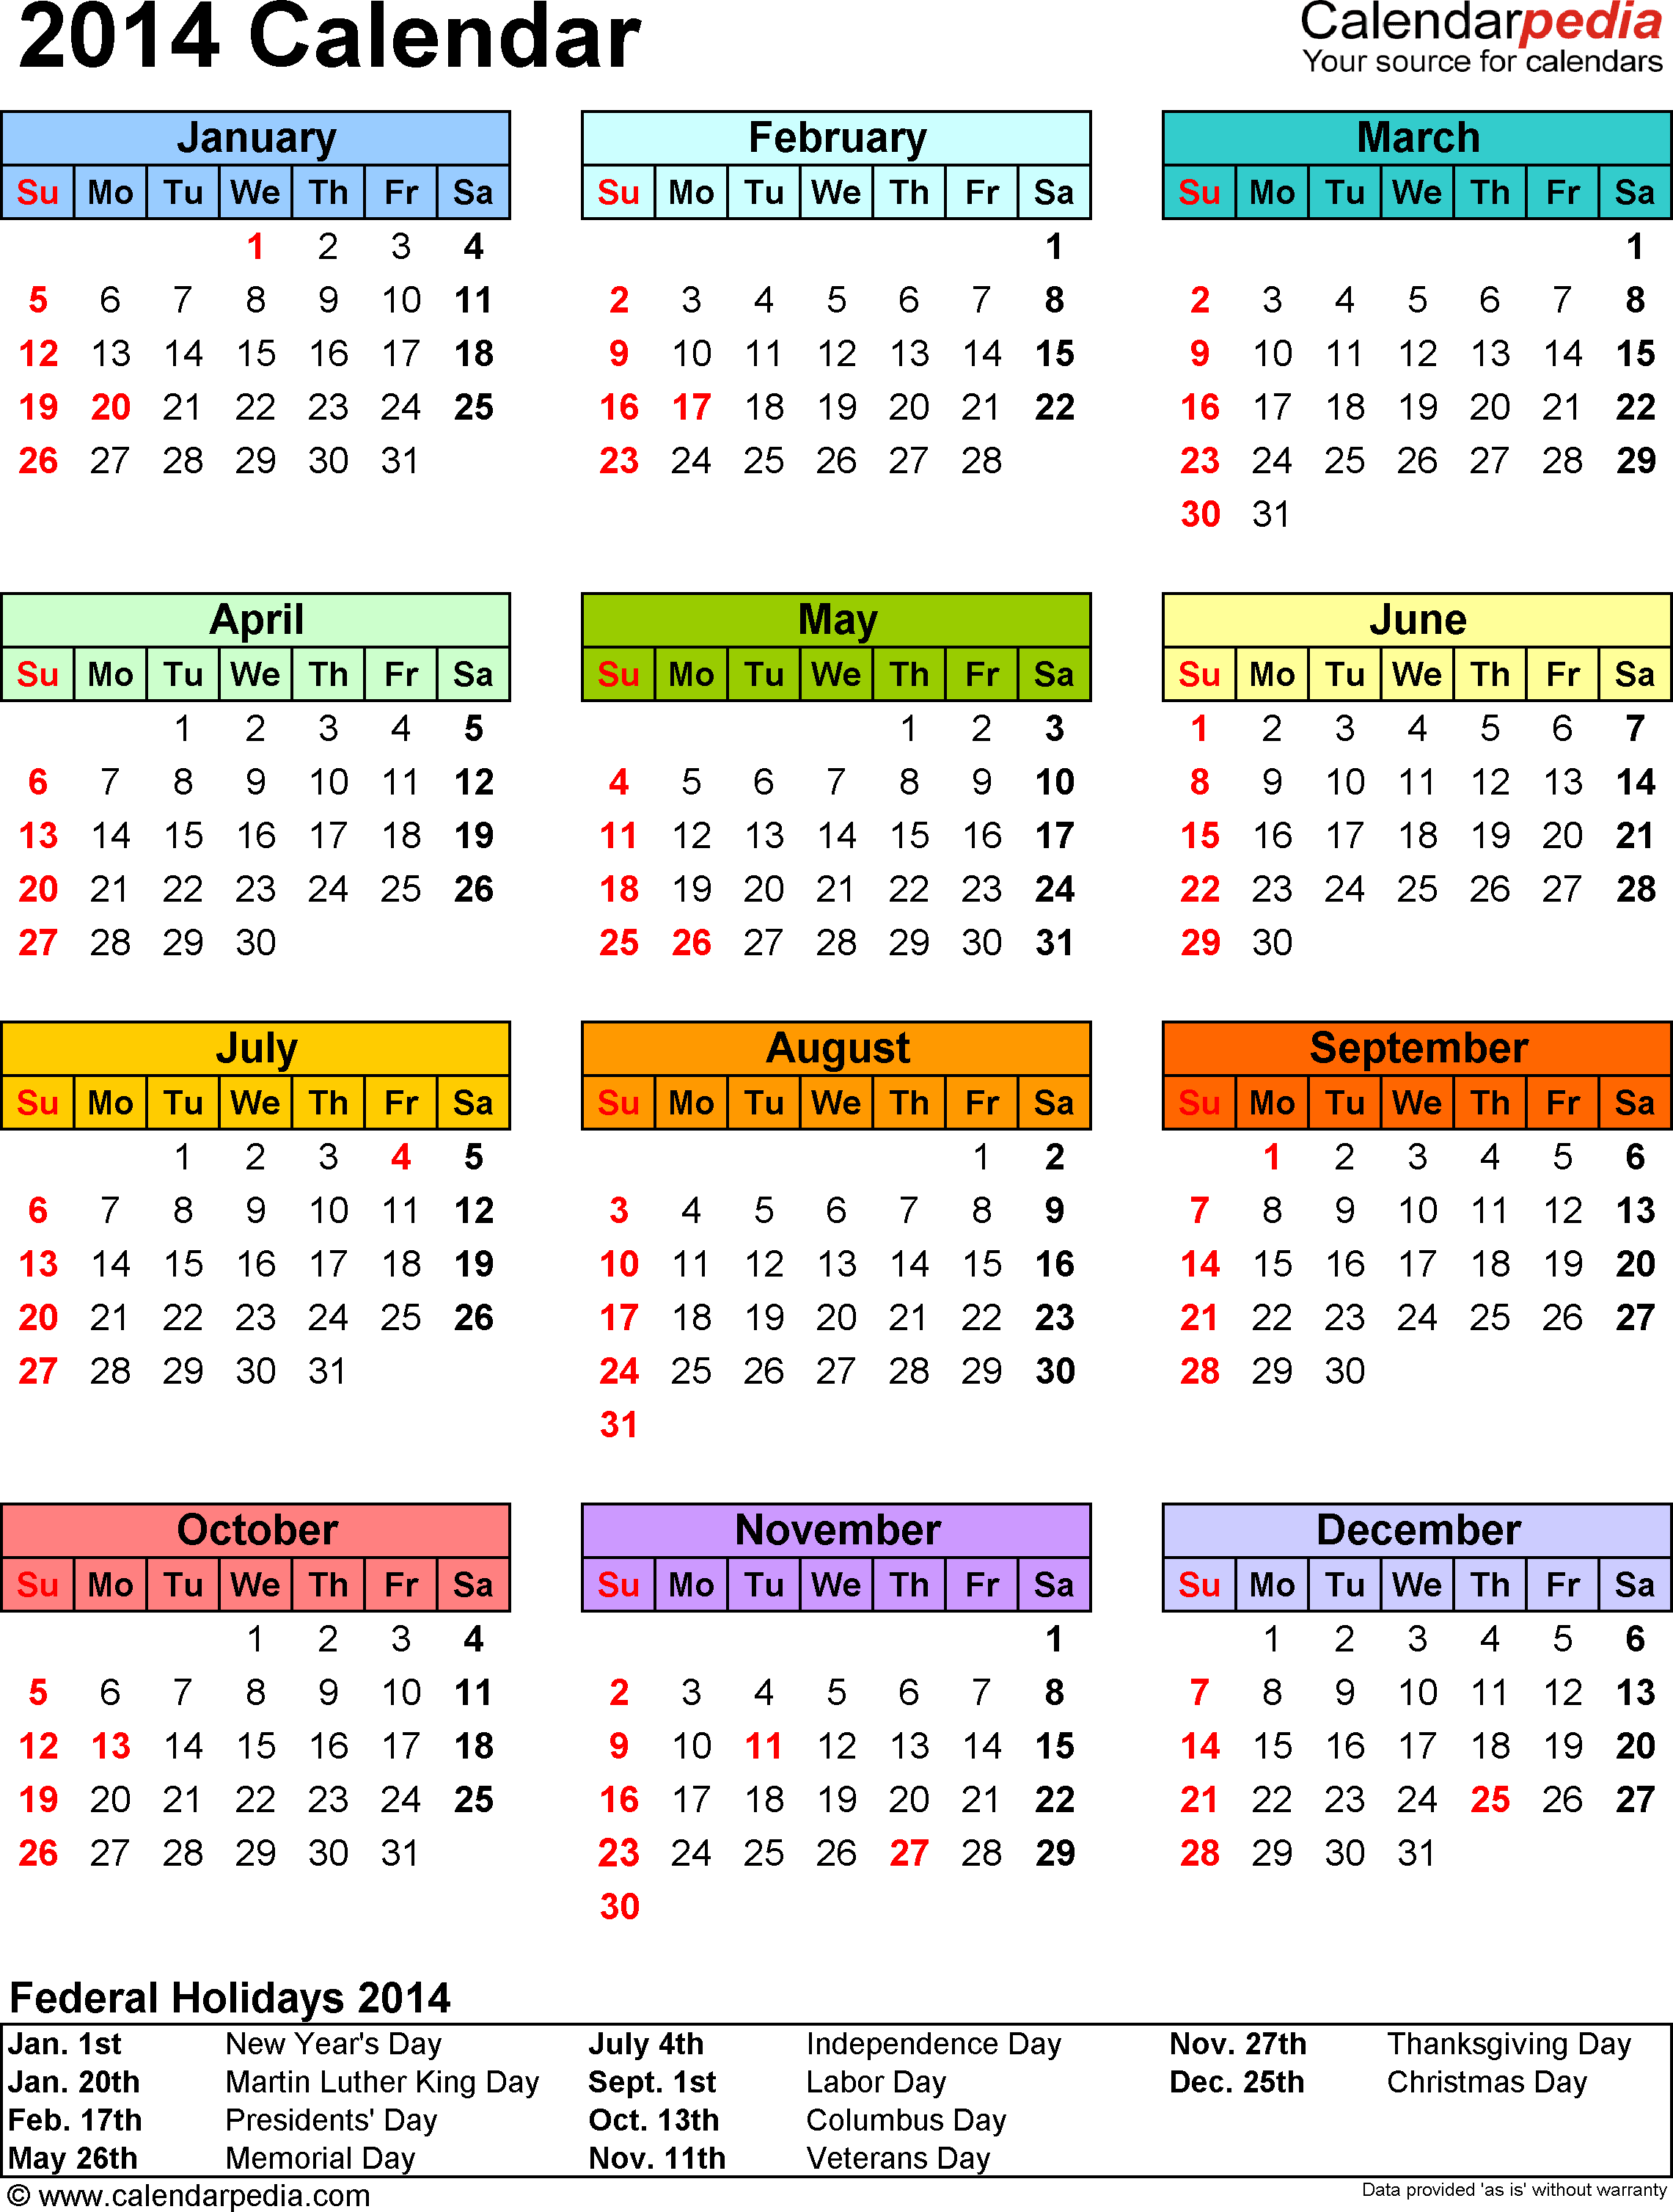 Download Template 12: 2014 Calendar for PDF, 1 page, portrait orientation, in color